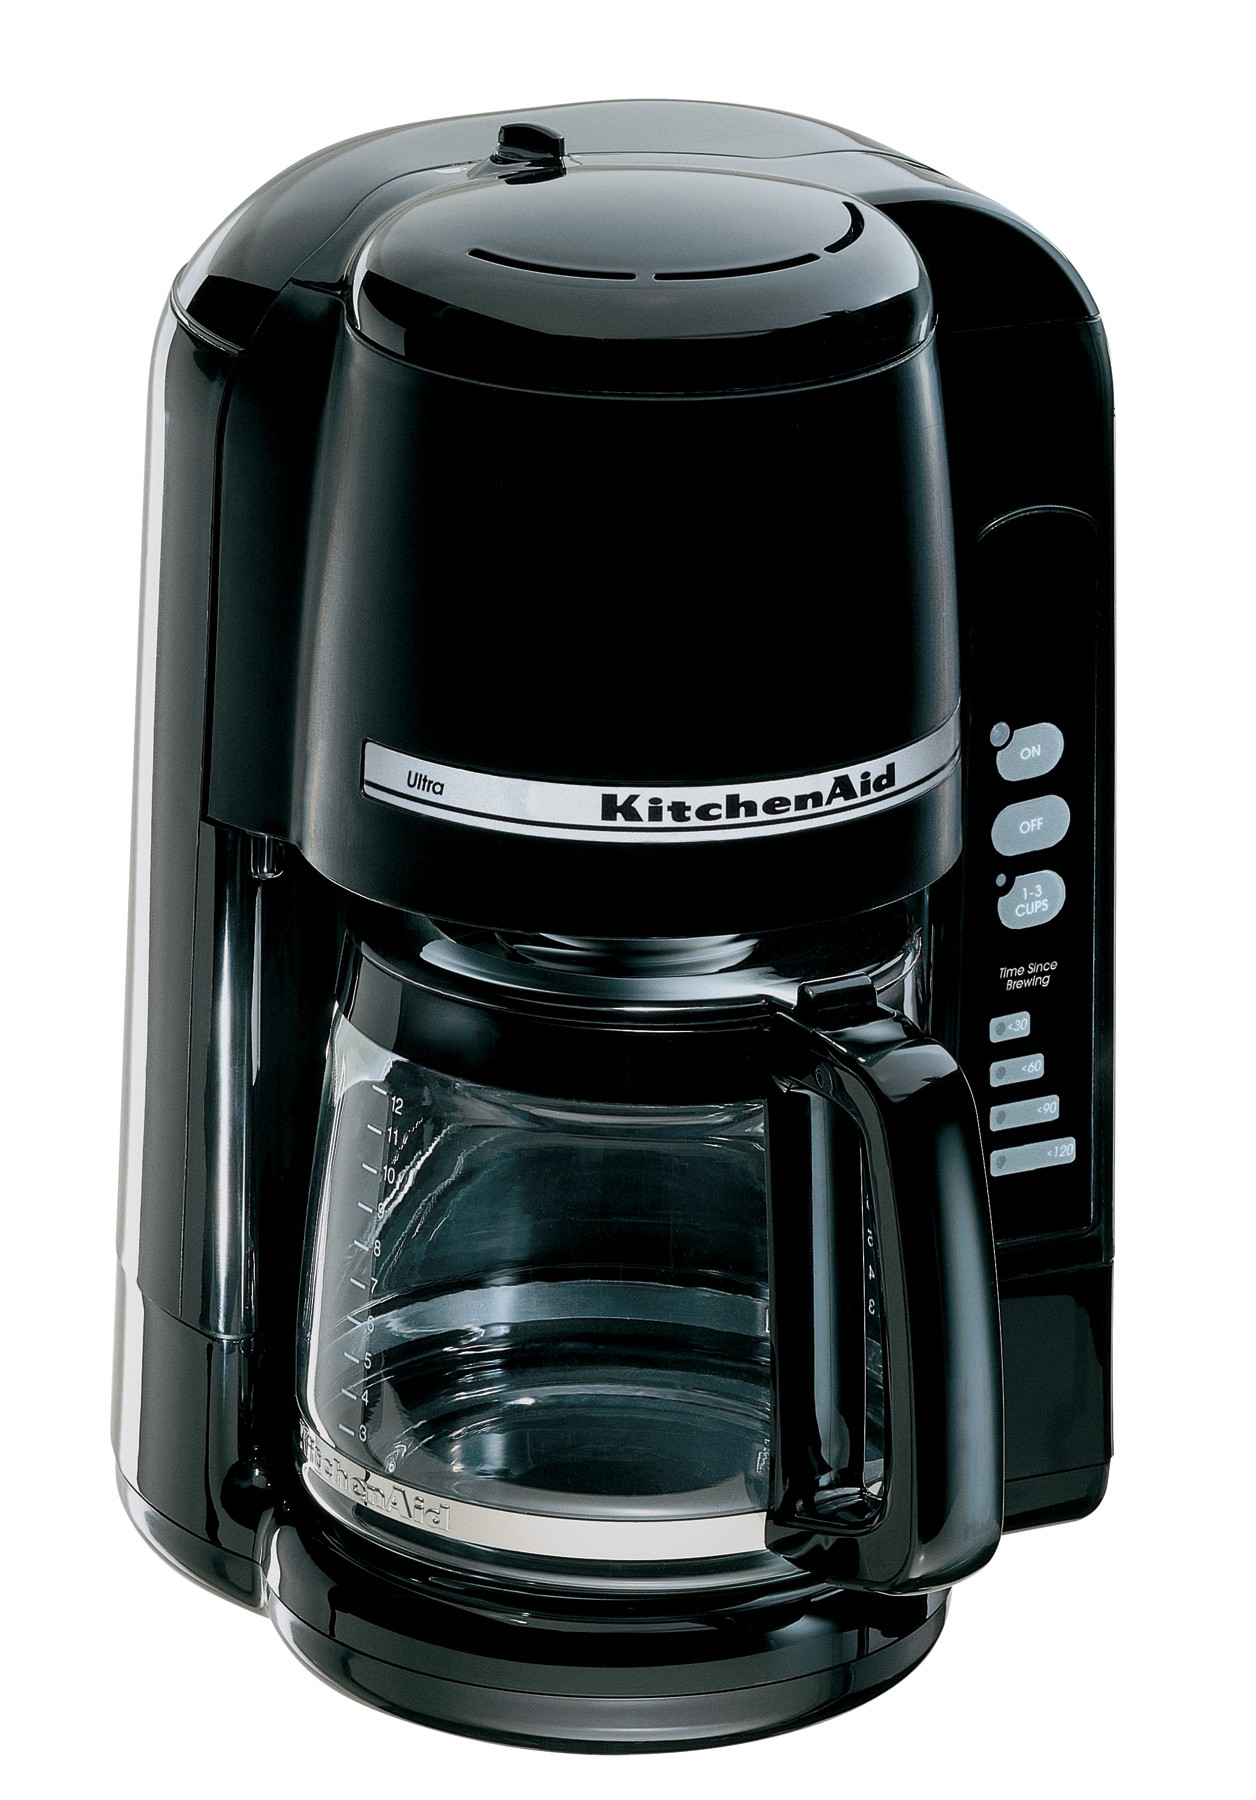 Cpsc Whirlpool Announce Recall Of Kitchenaid Coffeemakers Cpsc Gov